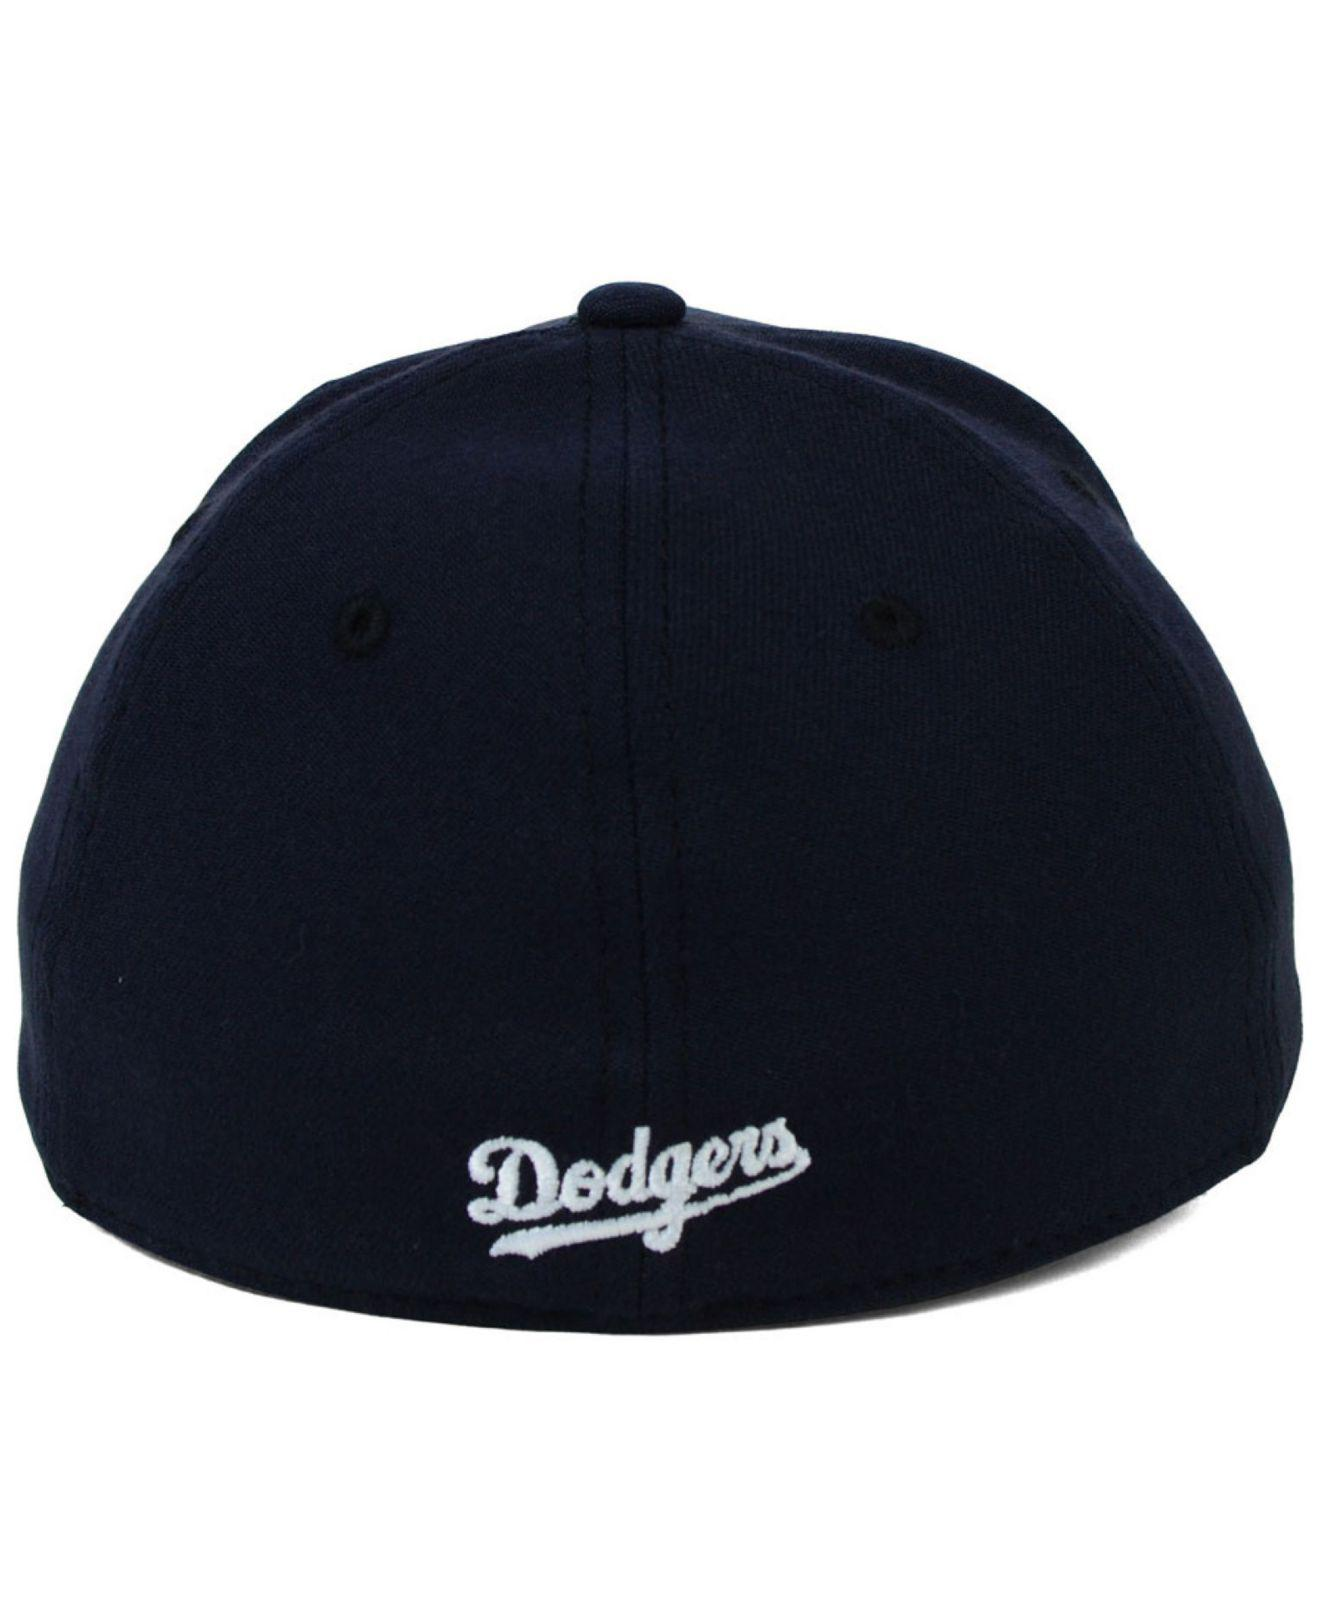 huge sale latest fashion hot product KTZ Synthetic Los Angeles Dodgers Fashion 39thirty Cap in Navy ...